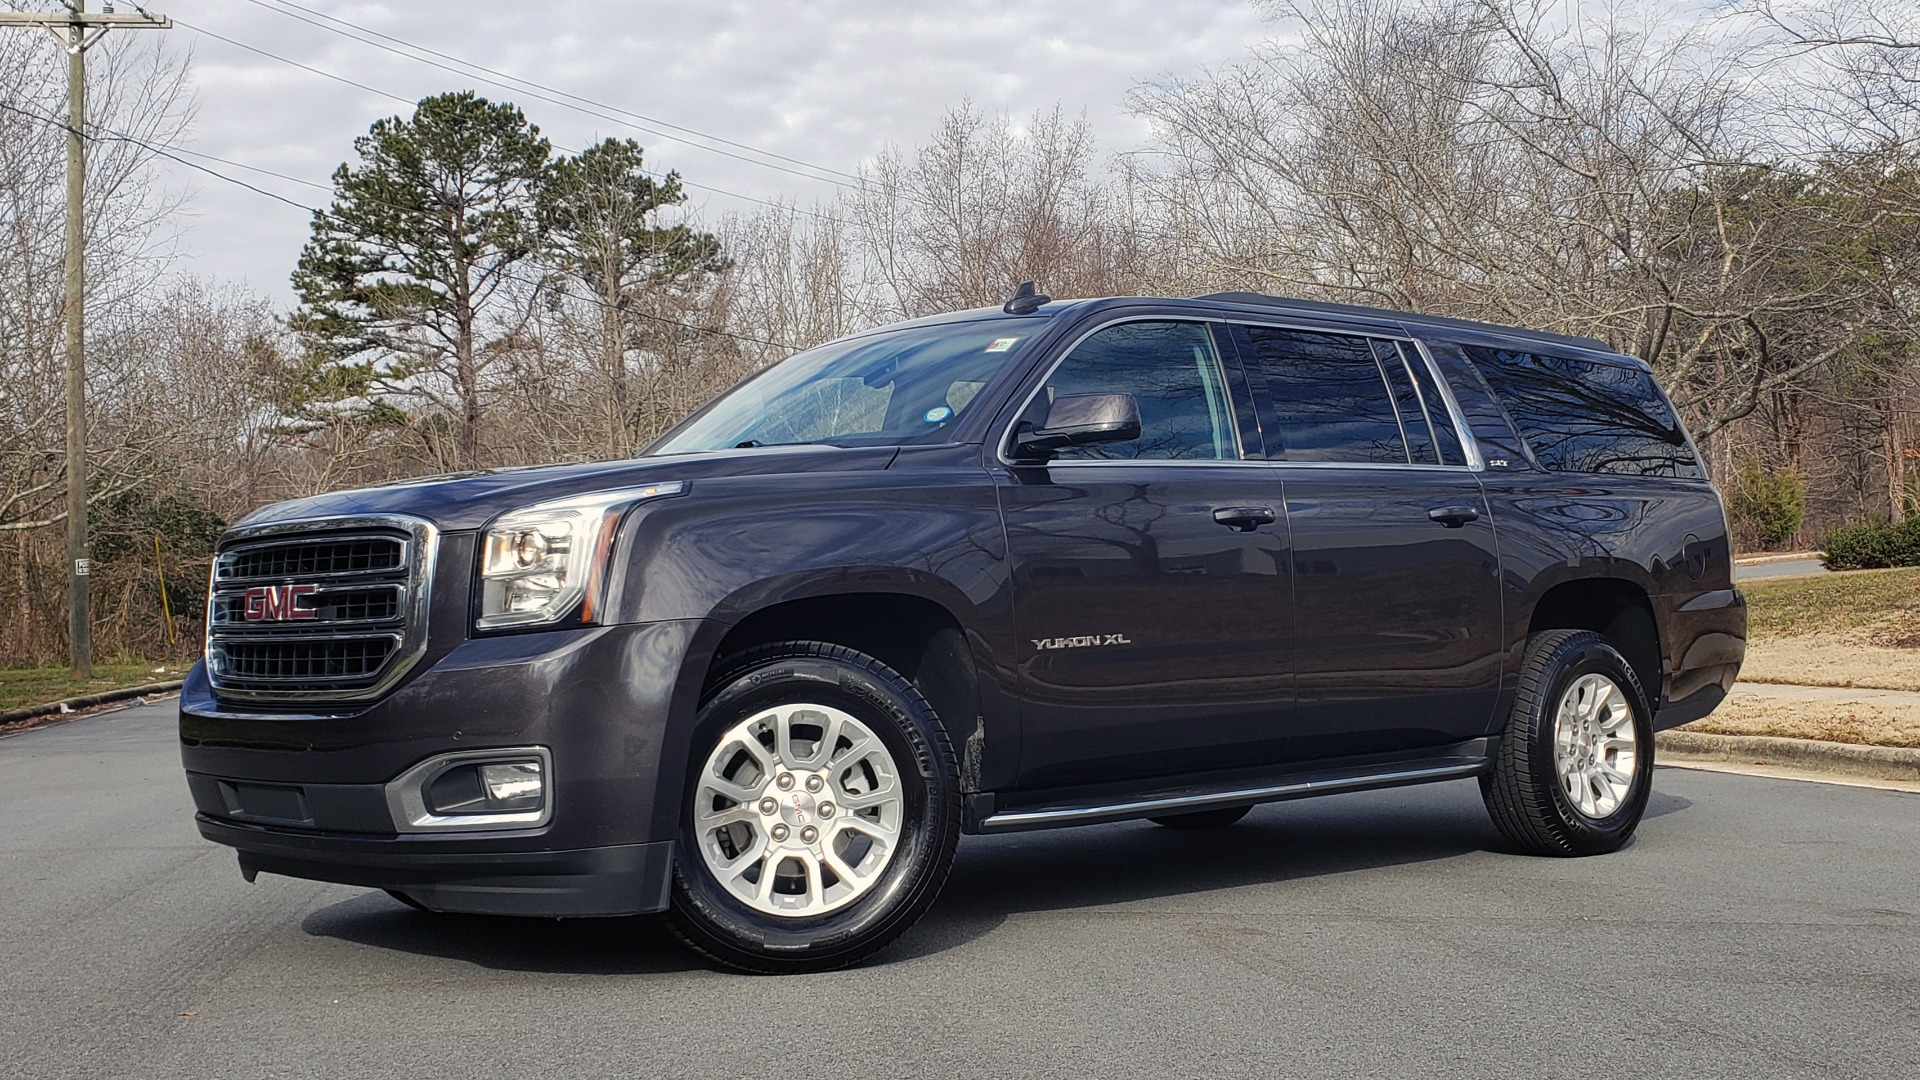 Used 2017 GMC YUKON XL SLT 4X4 / NAV / SUNROOF / BOSE / 3-ROW / REARVIEW for sale Sold at Formula Imports in Charlotte NC 28227 1